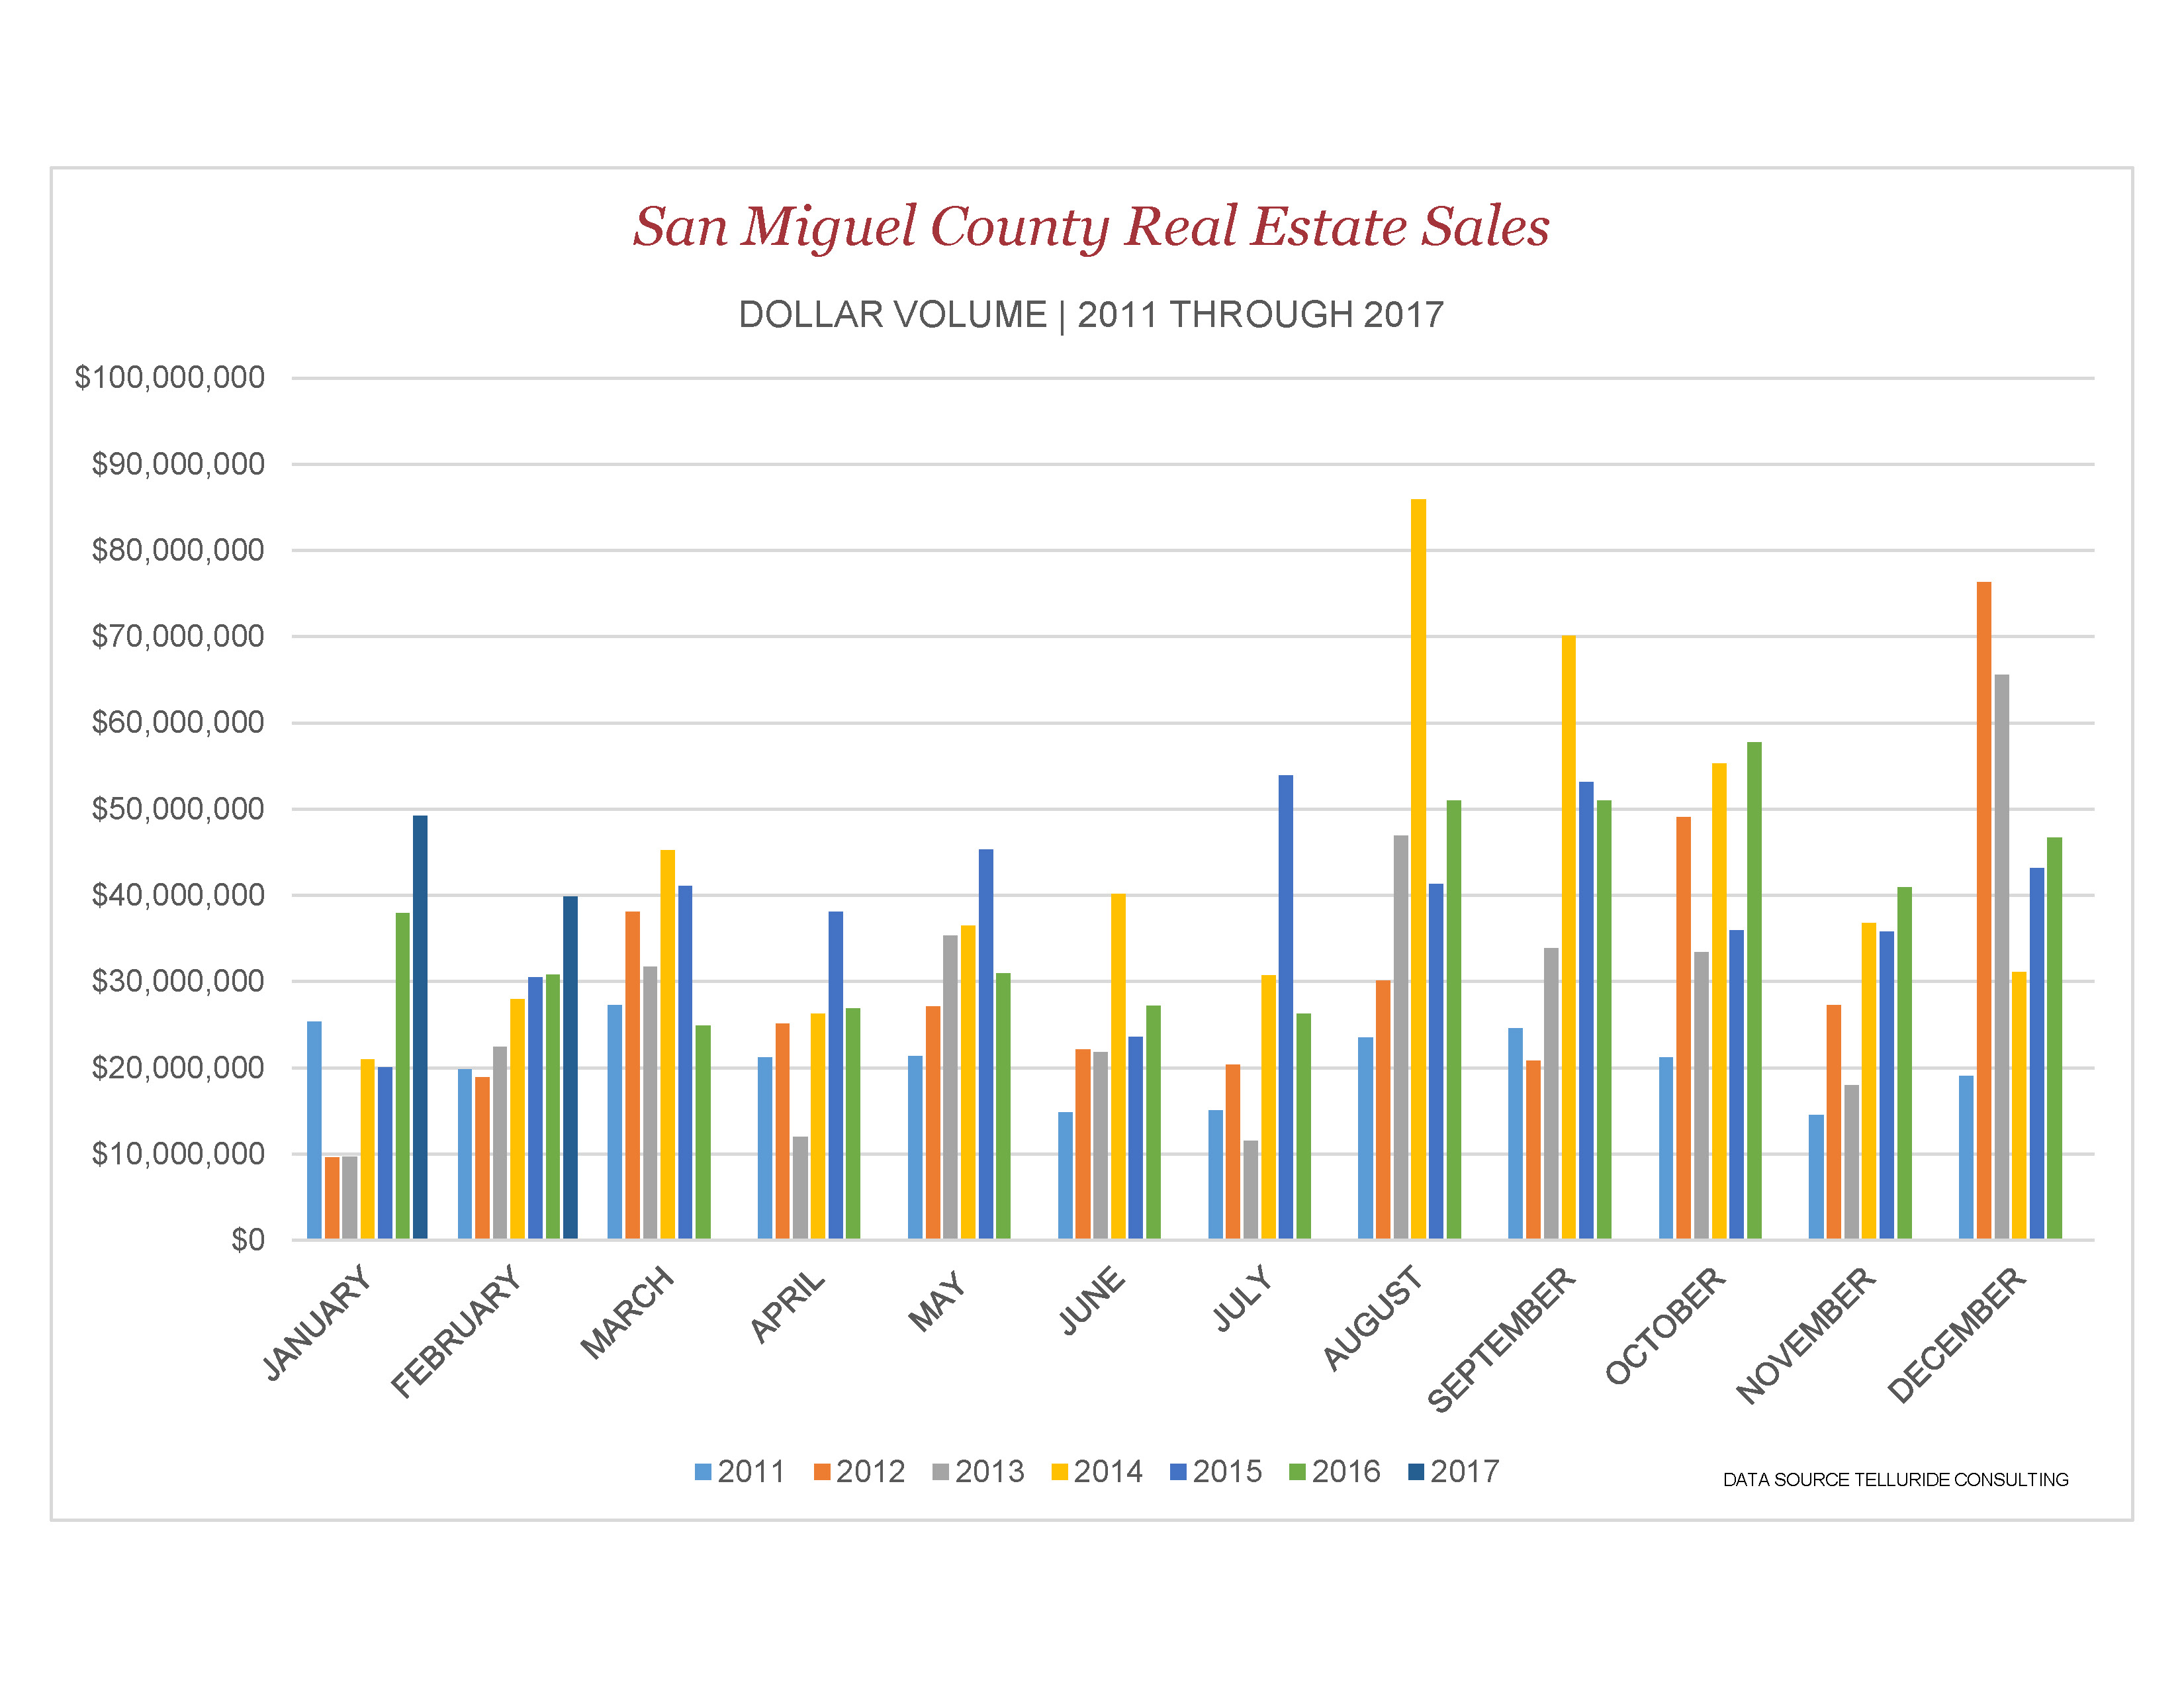 San Miguel County Real Estate Sales Dollar Volume-courtesy or Telluride Consulting